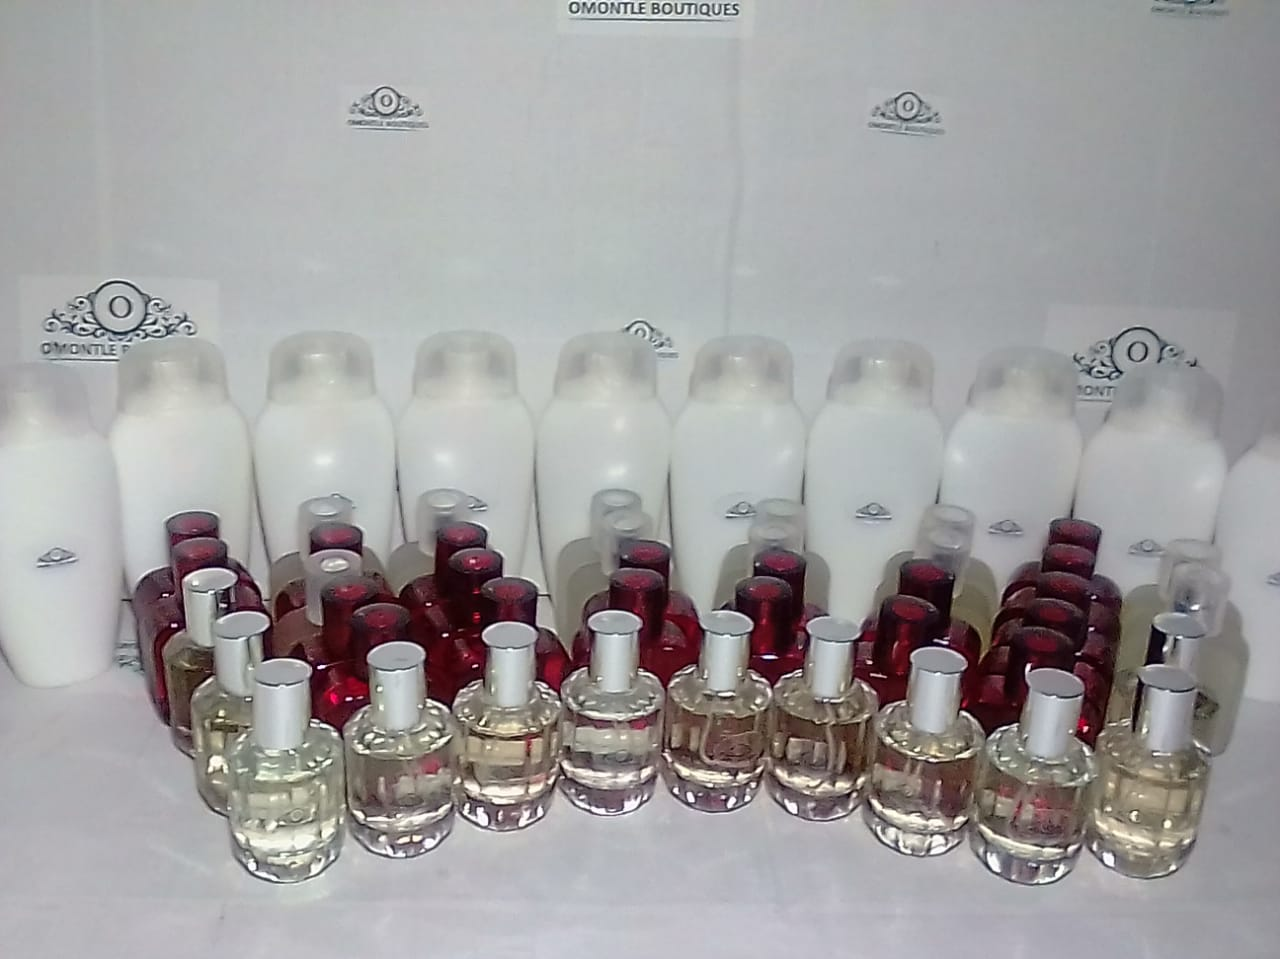 LEARN TO MAKE OIL BASED PERFUMES ANG GET A STARTER KIT TO KICK START YOUR BUSINESS